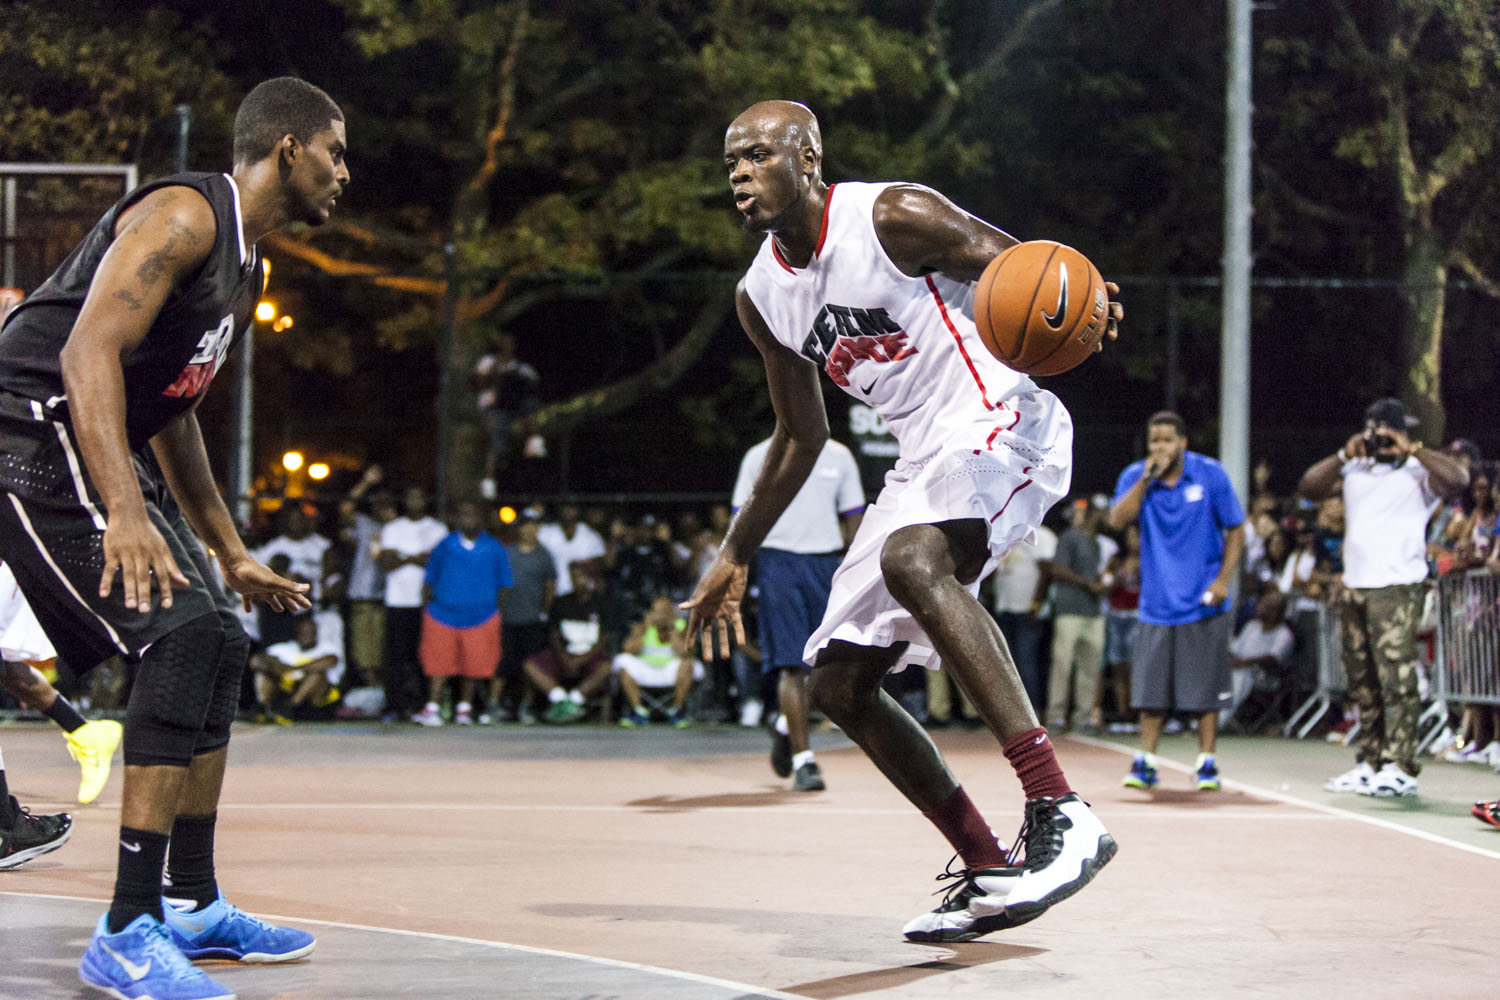 Delroy James, former Rhode Island Ram, had a sensational start to the game with strong drives to the basket that made even the city's best players look helpless at times.